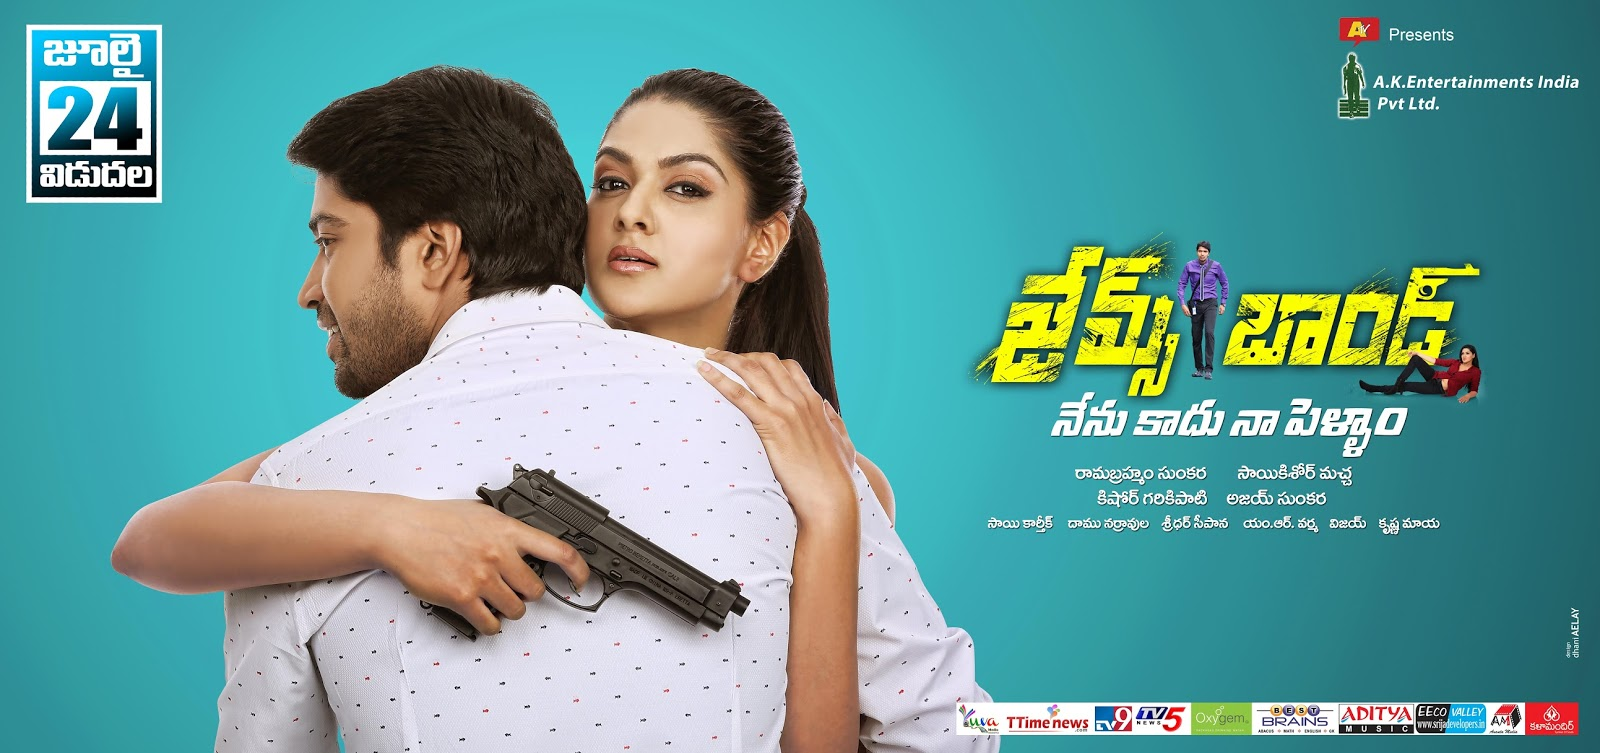 James Bond Telugu Movie HD Posters | Allari Naresh | Sakshi Chaudhary